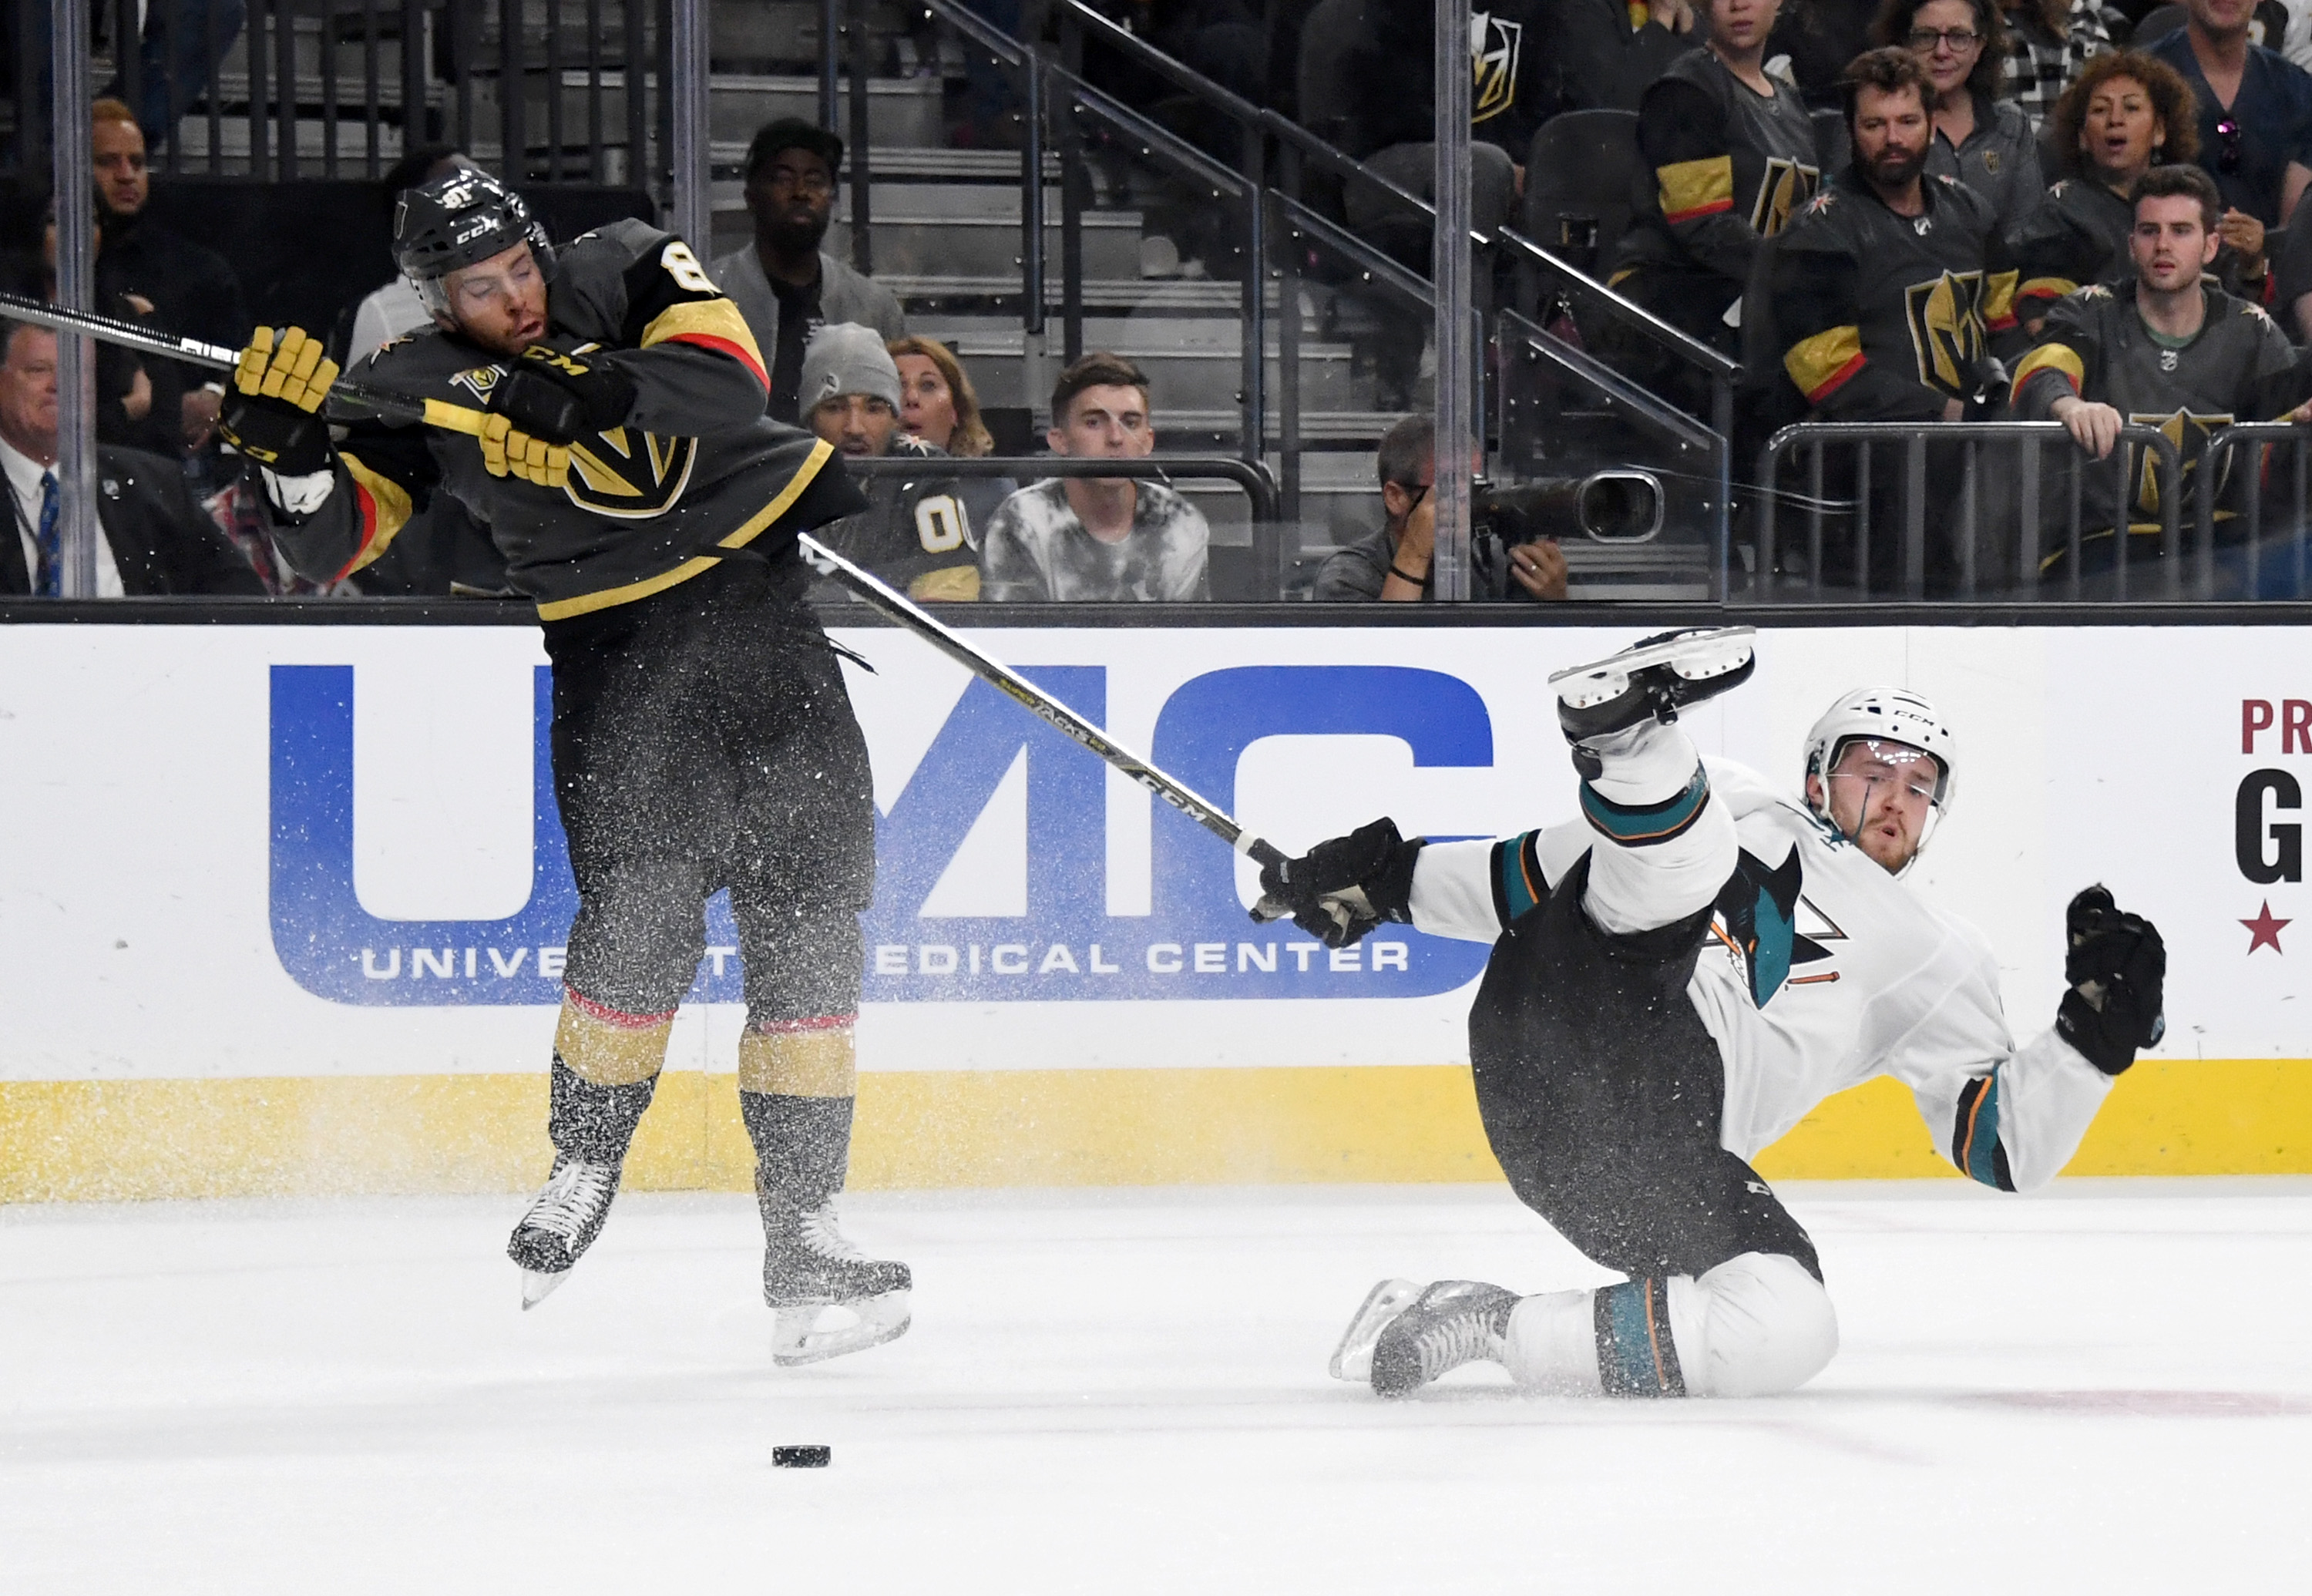 LAS VEGAS, NV - APRIL 28: Jonathan Marchessault #81 of the Vegas Golden Knights and Chris Tierney #50 of the San Jose Sharks collide in the third period of Game Two of the Western Conference Second Round during the 2018 NHL Stanley Cup Playoffs at T-Mobil